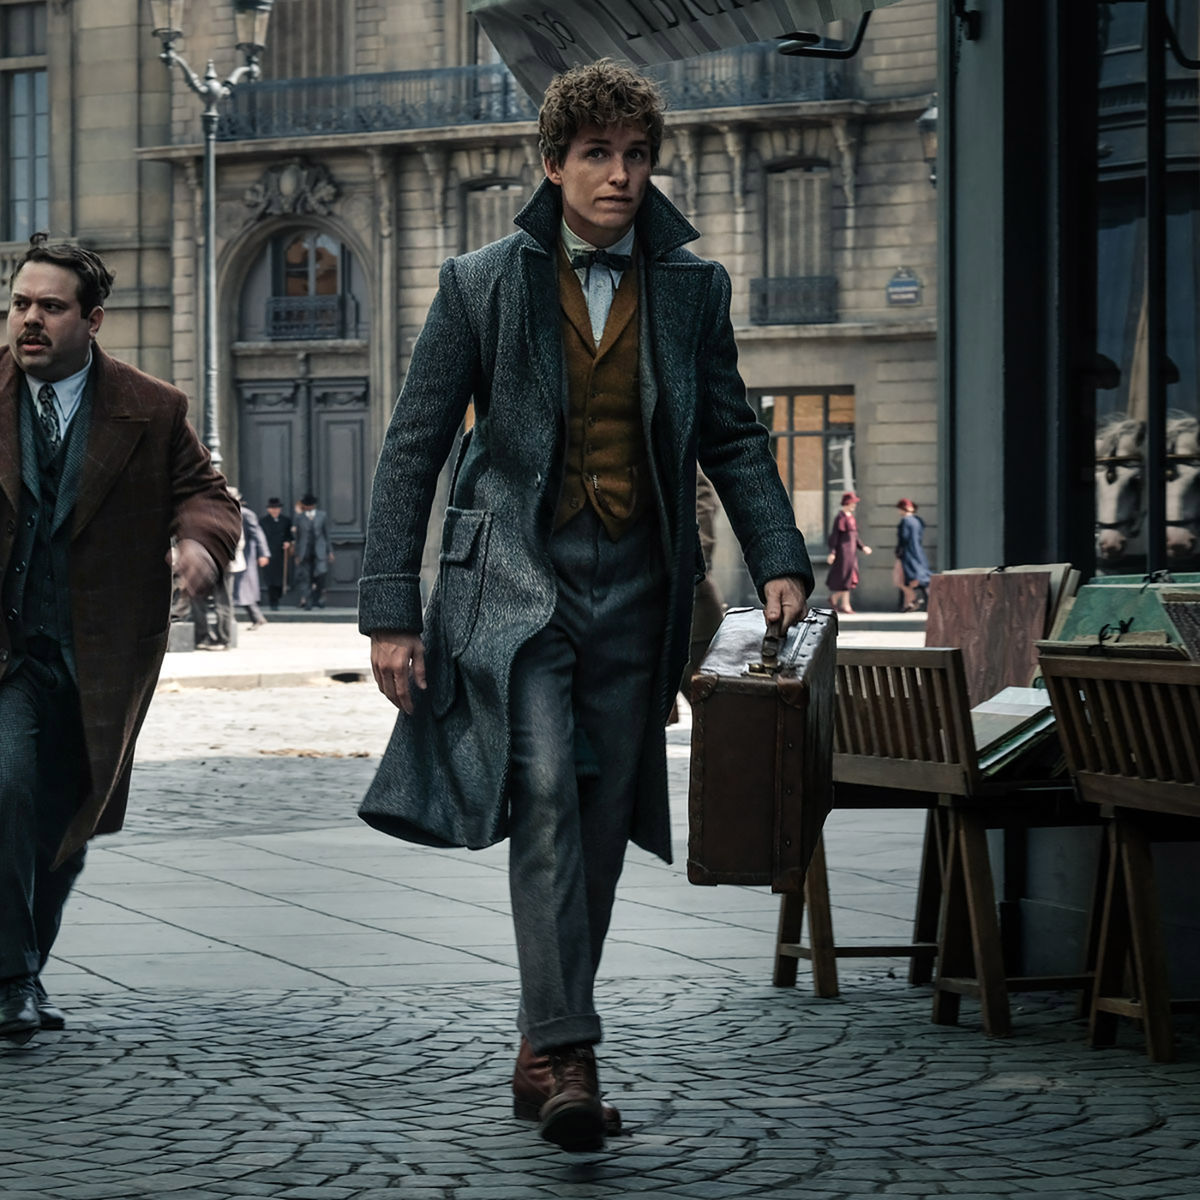 New 'Fantastic Beasts: The Crimes of Grindelwald' Poster Released